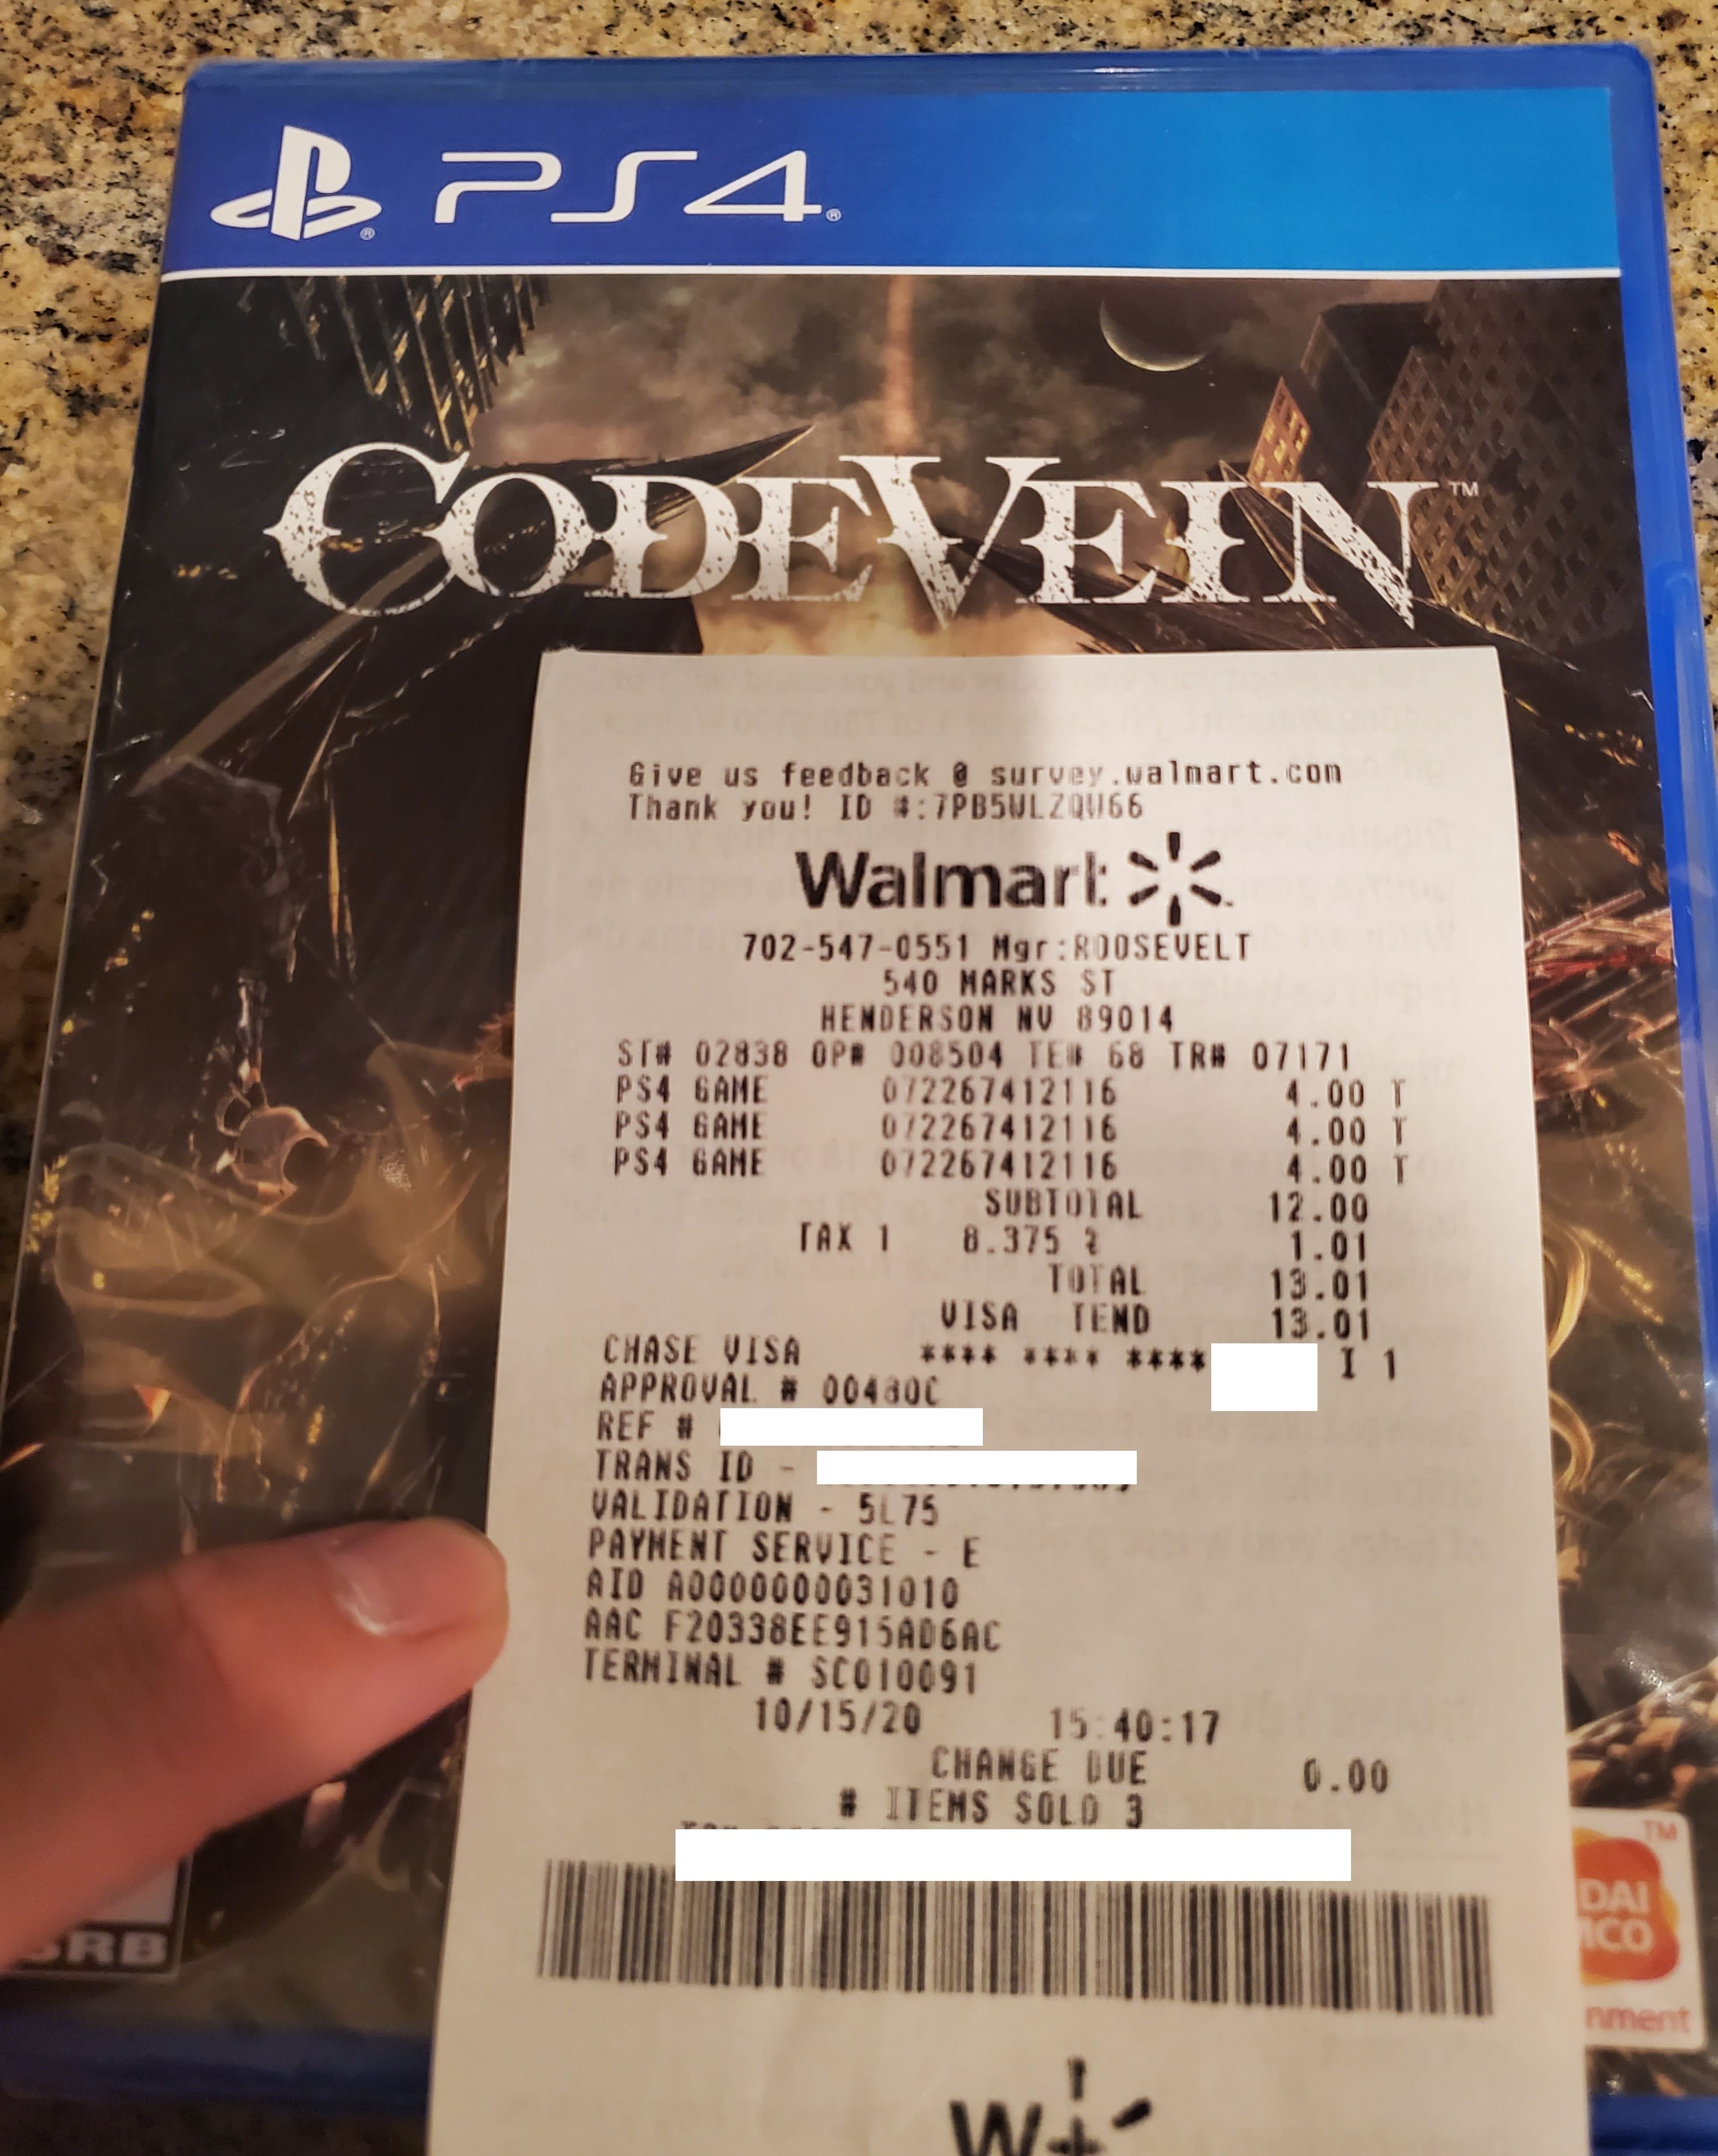 Code Vein (PS4) & Bloodstained: Ritual of the Night (PS4) - $4 at Walmart Clearance (YMMV)